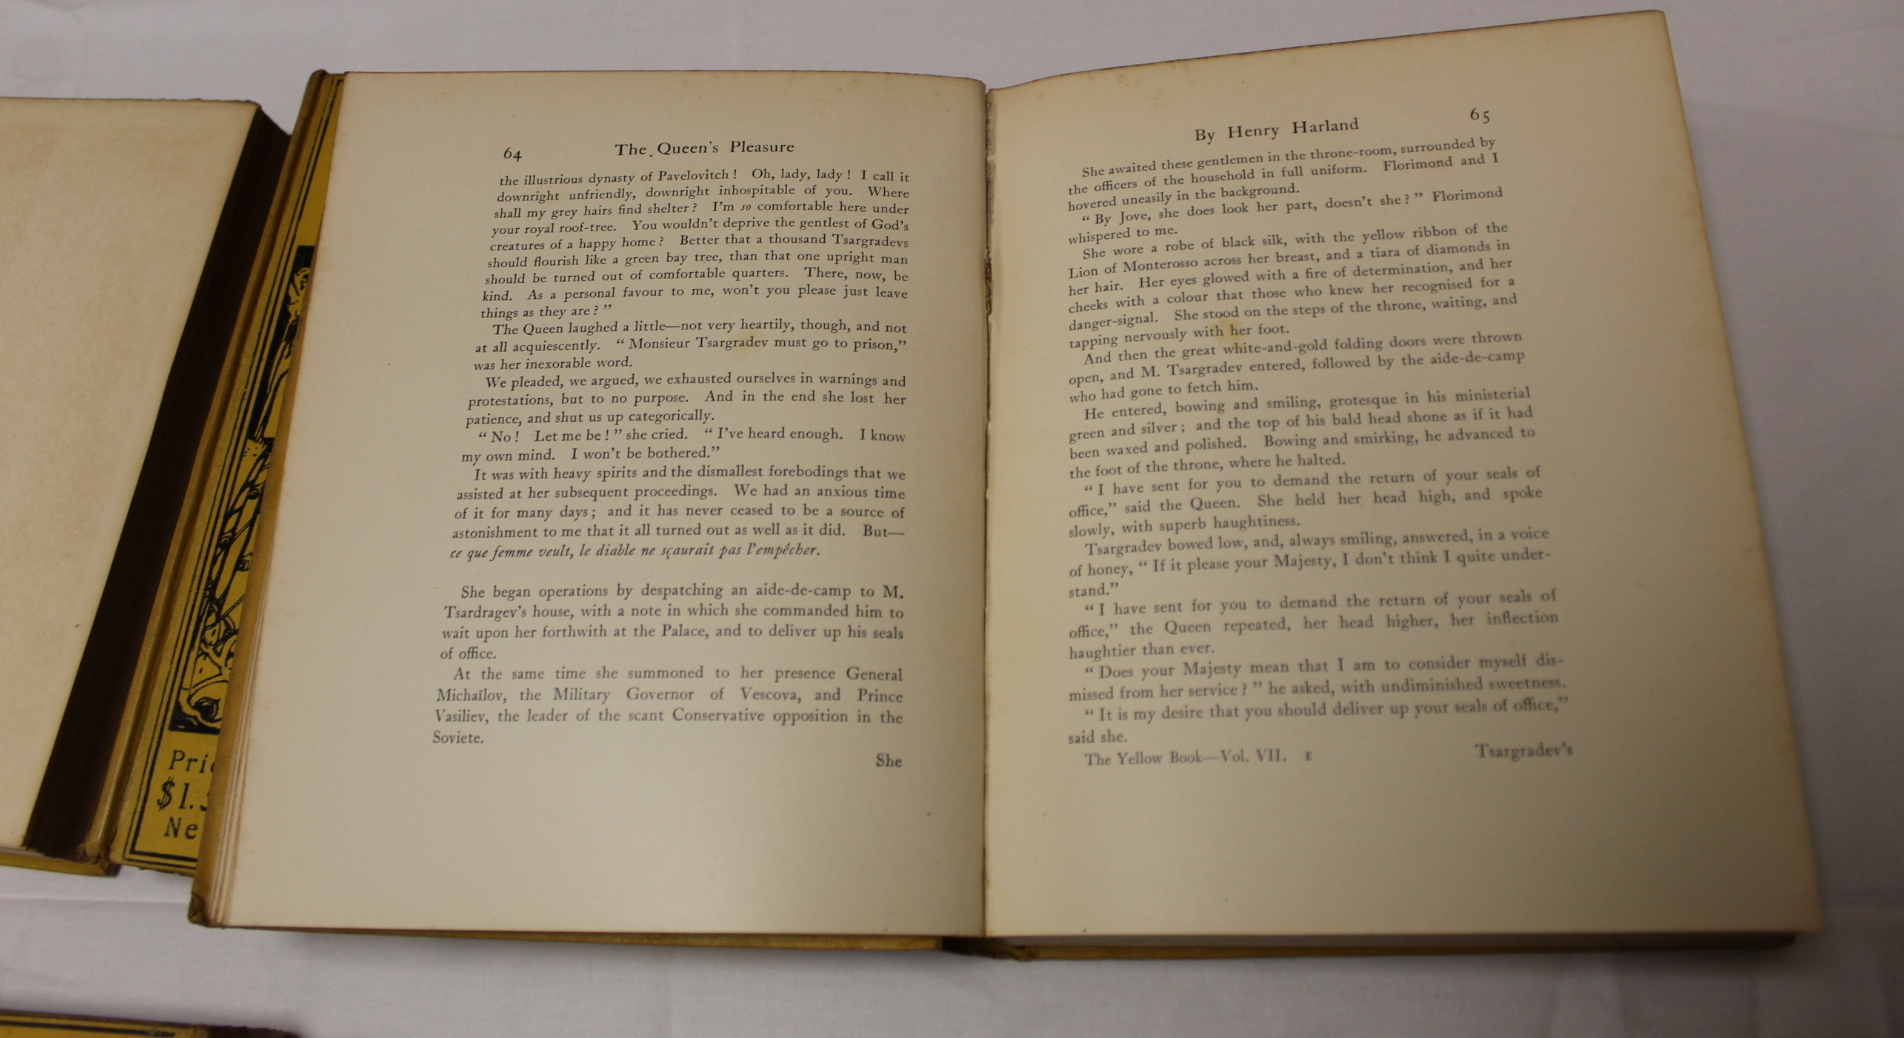 THE YELLOW BOOK.An Illustrated Quarterly. A set of 13 vols., many fine illus. Small quarto. - Image 31 of 45